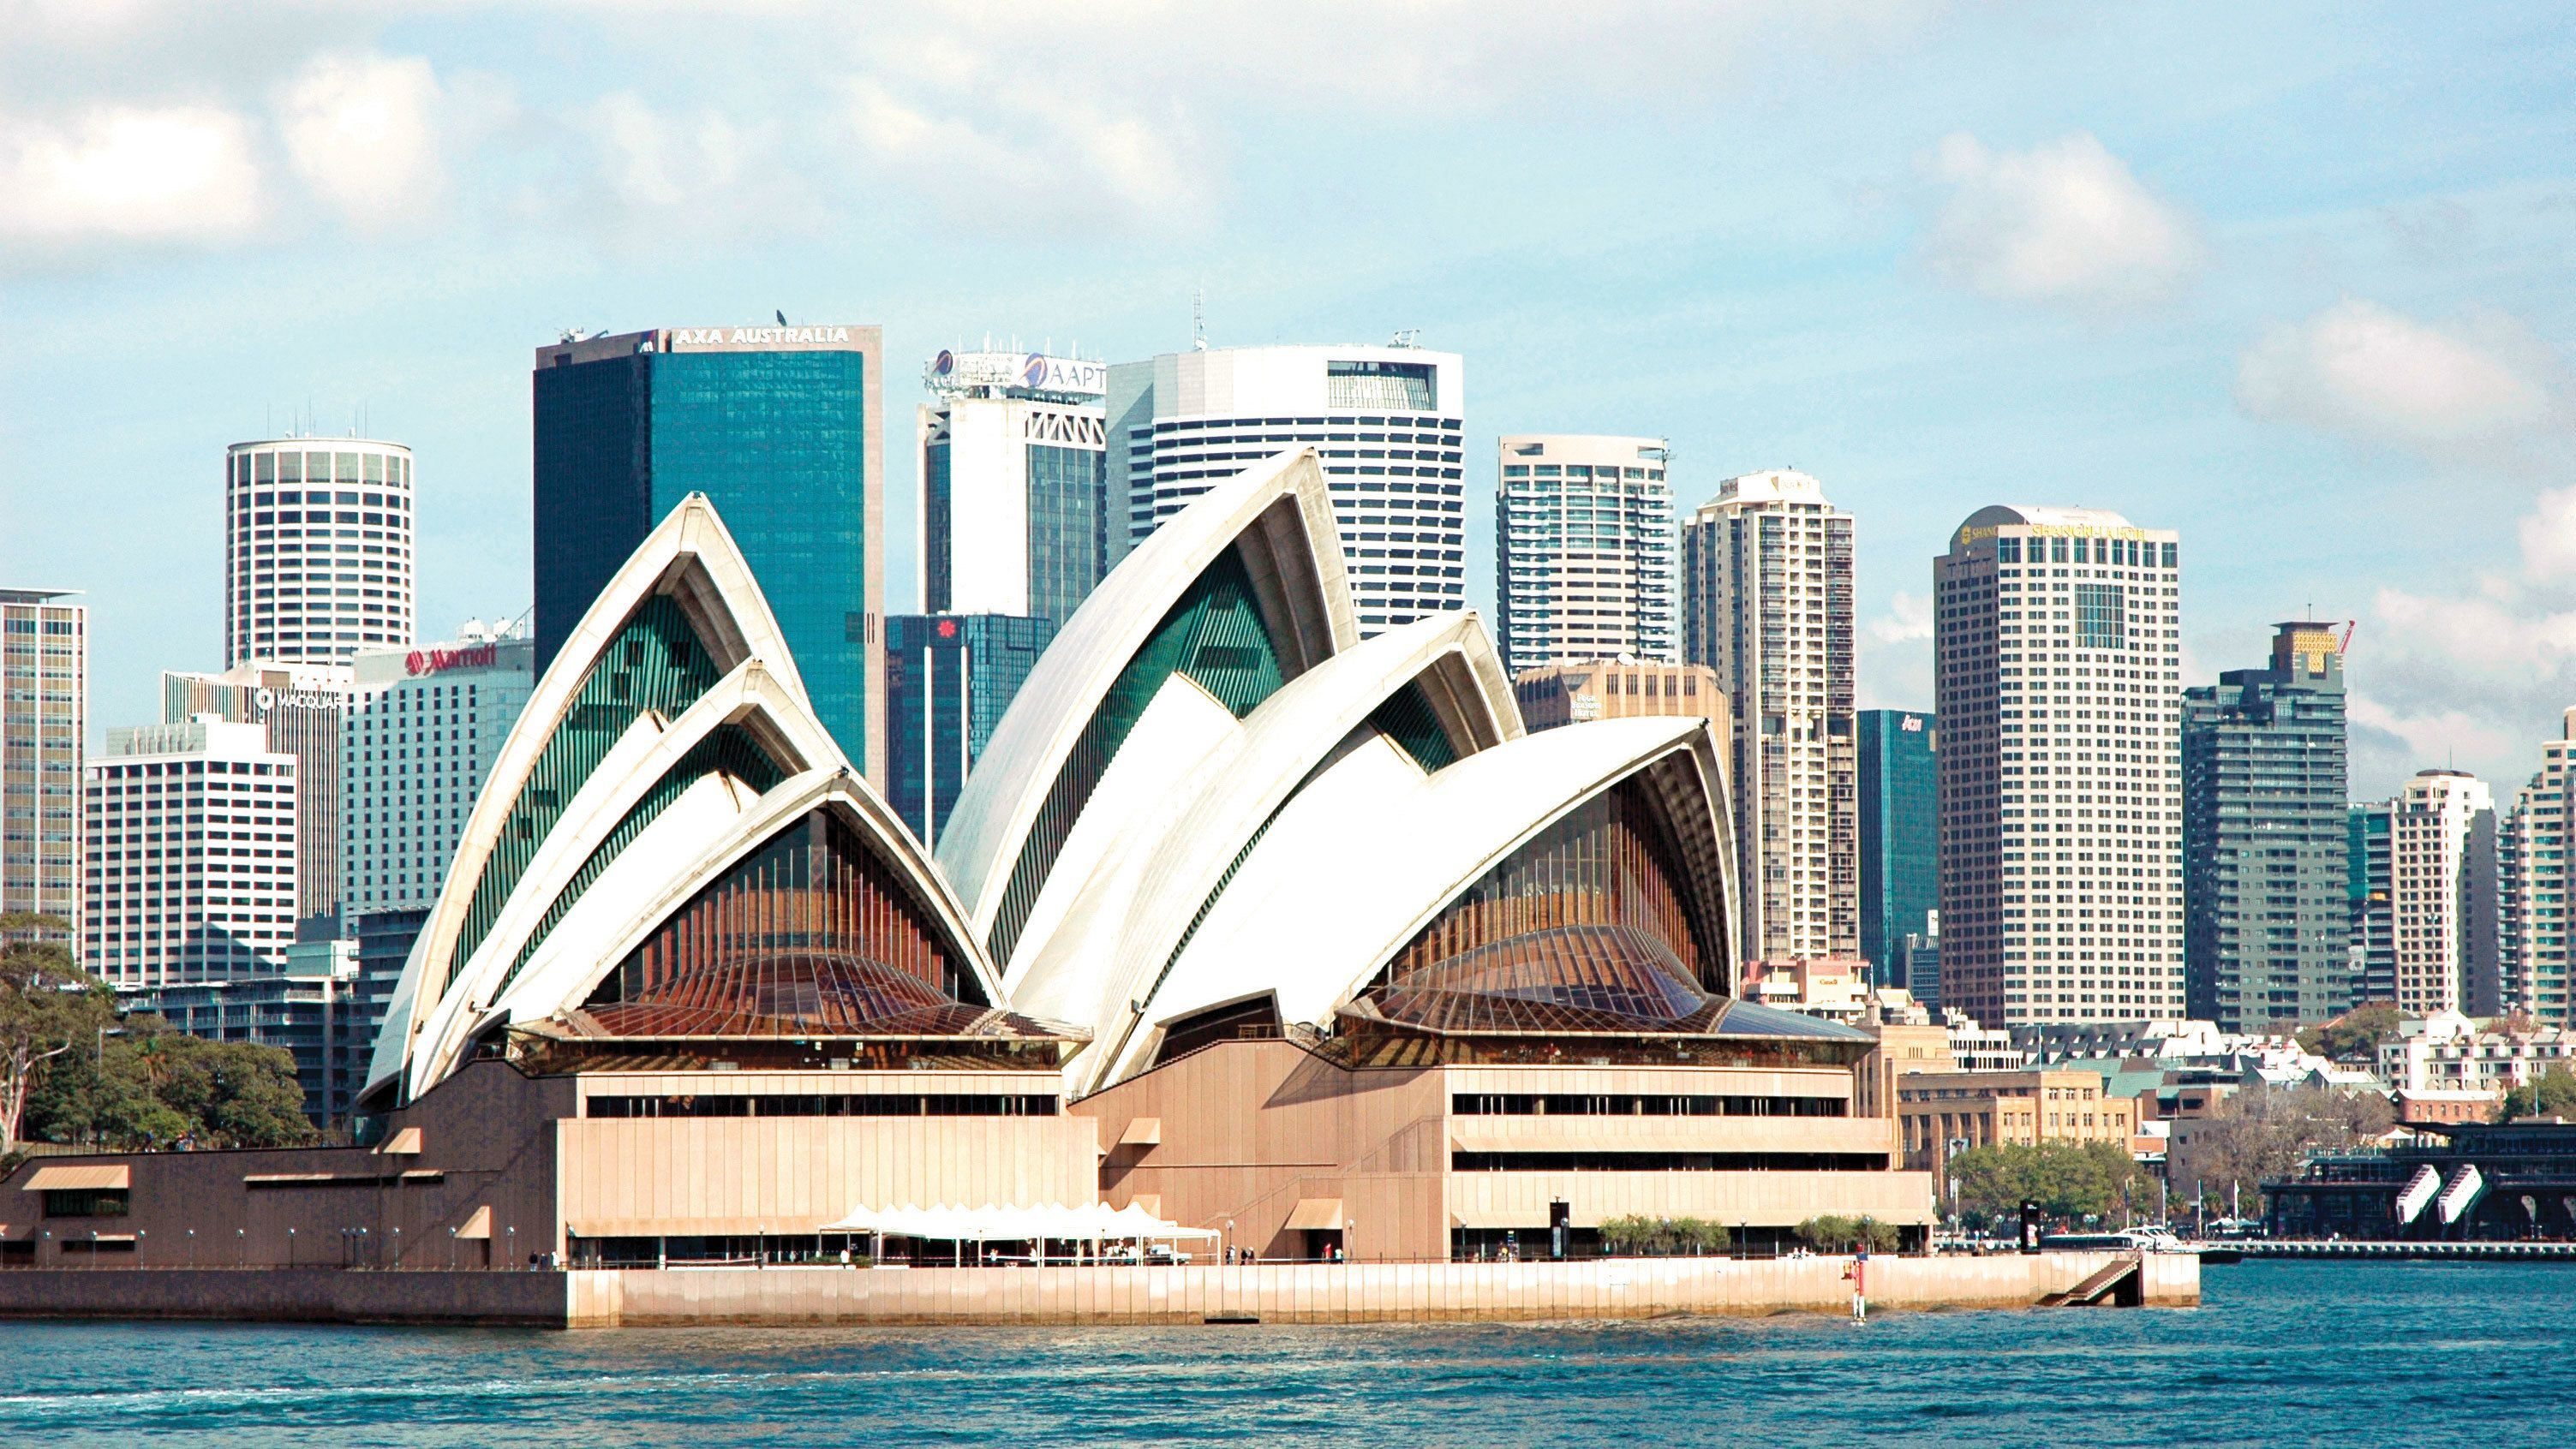 Close view of the Sydney Opera House and city buildings from the Sydney Harbour